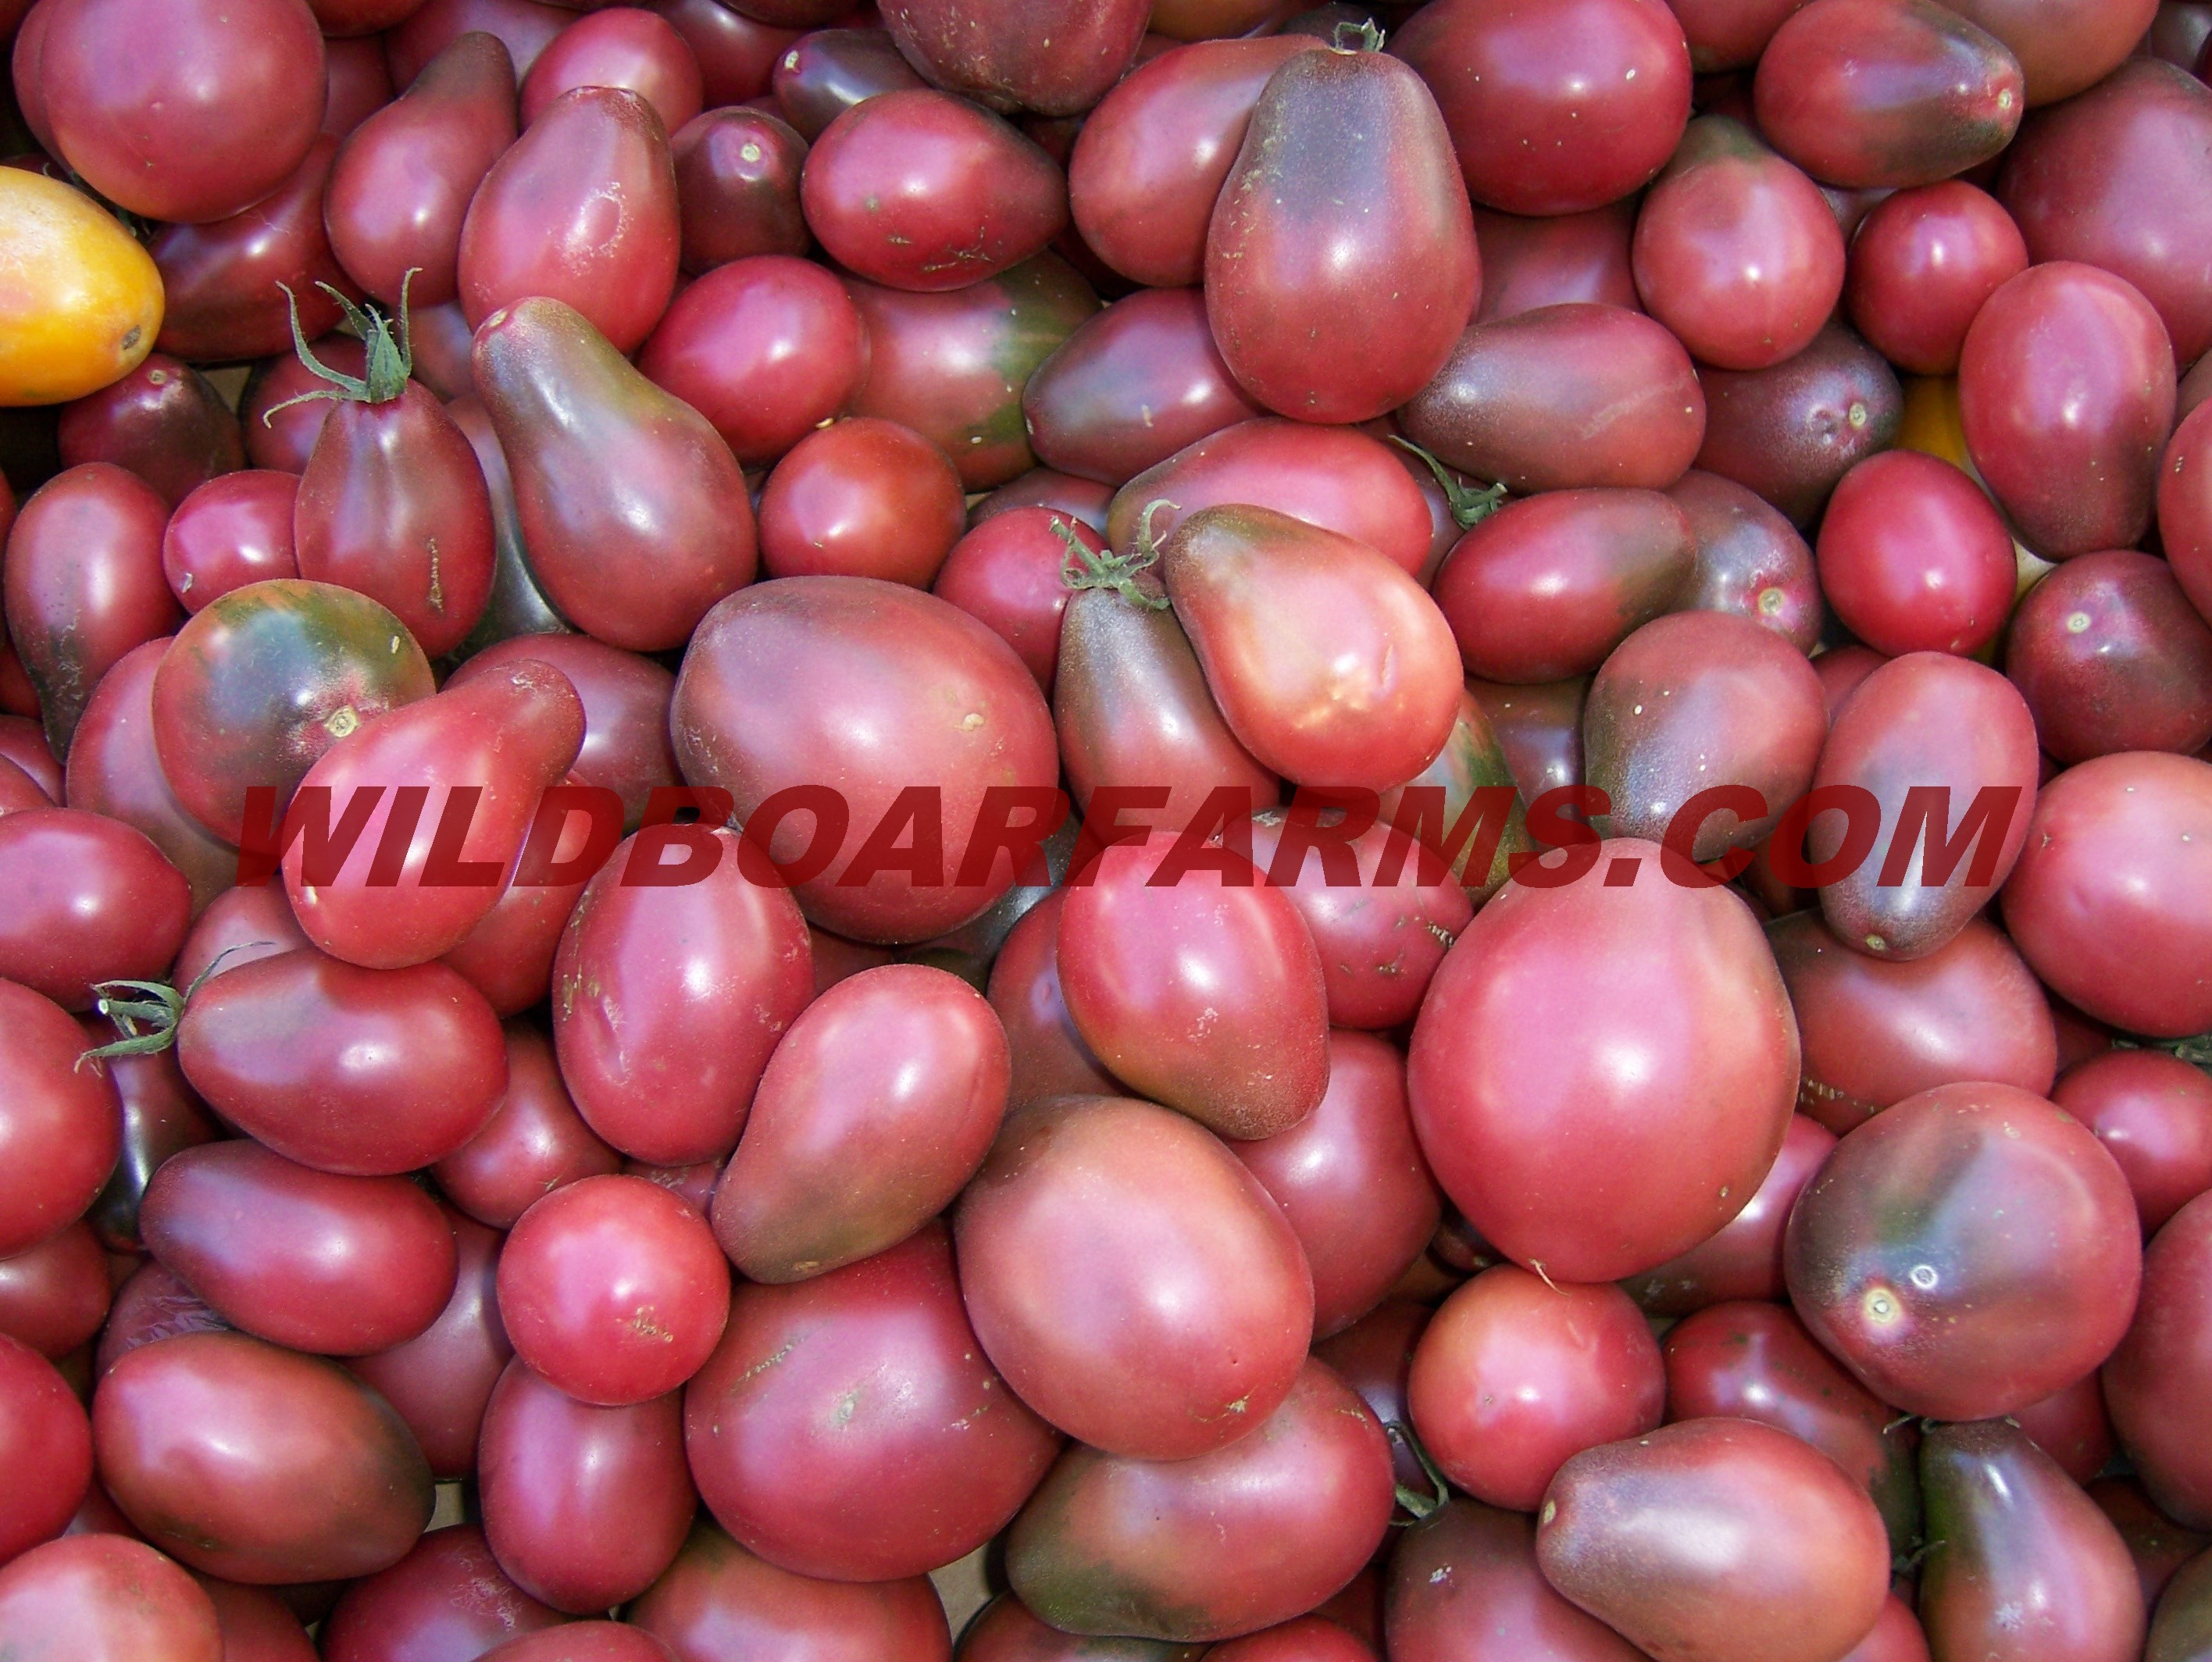 Wild Boar Farms Tomatoes 09